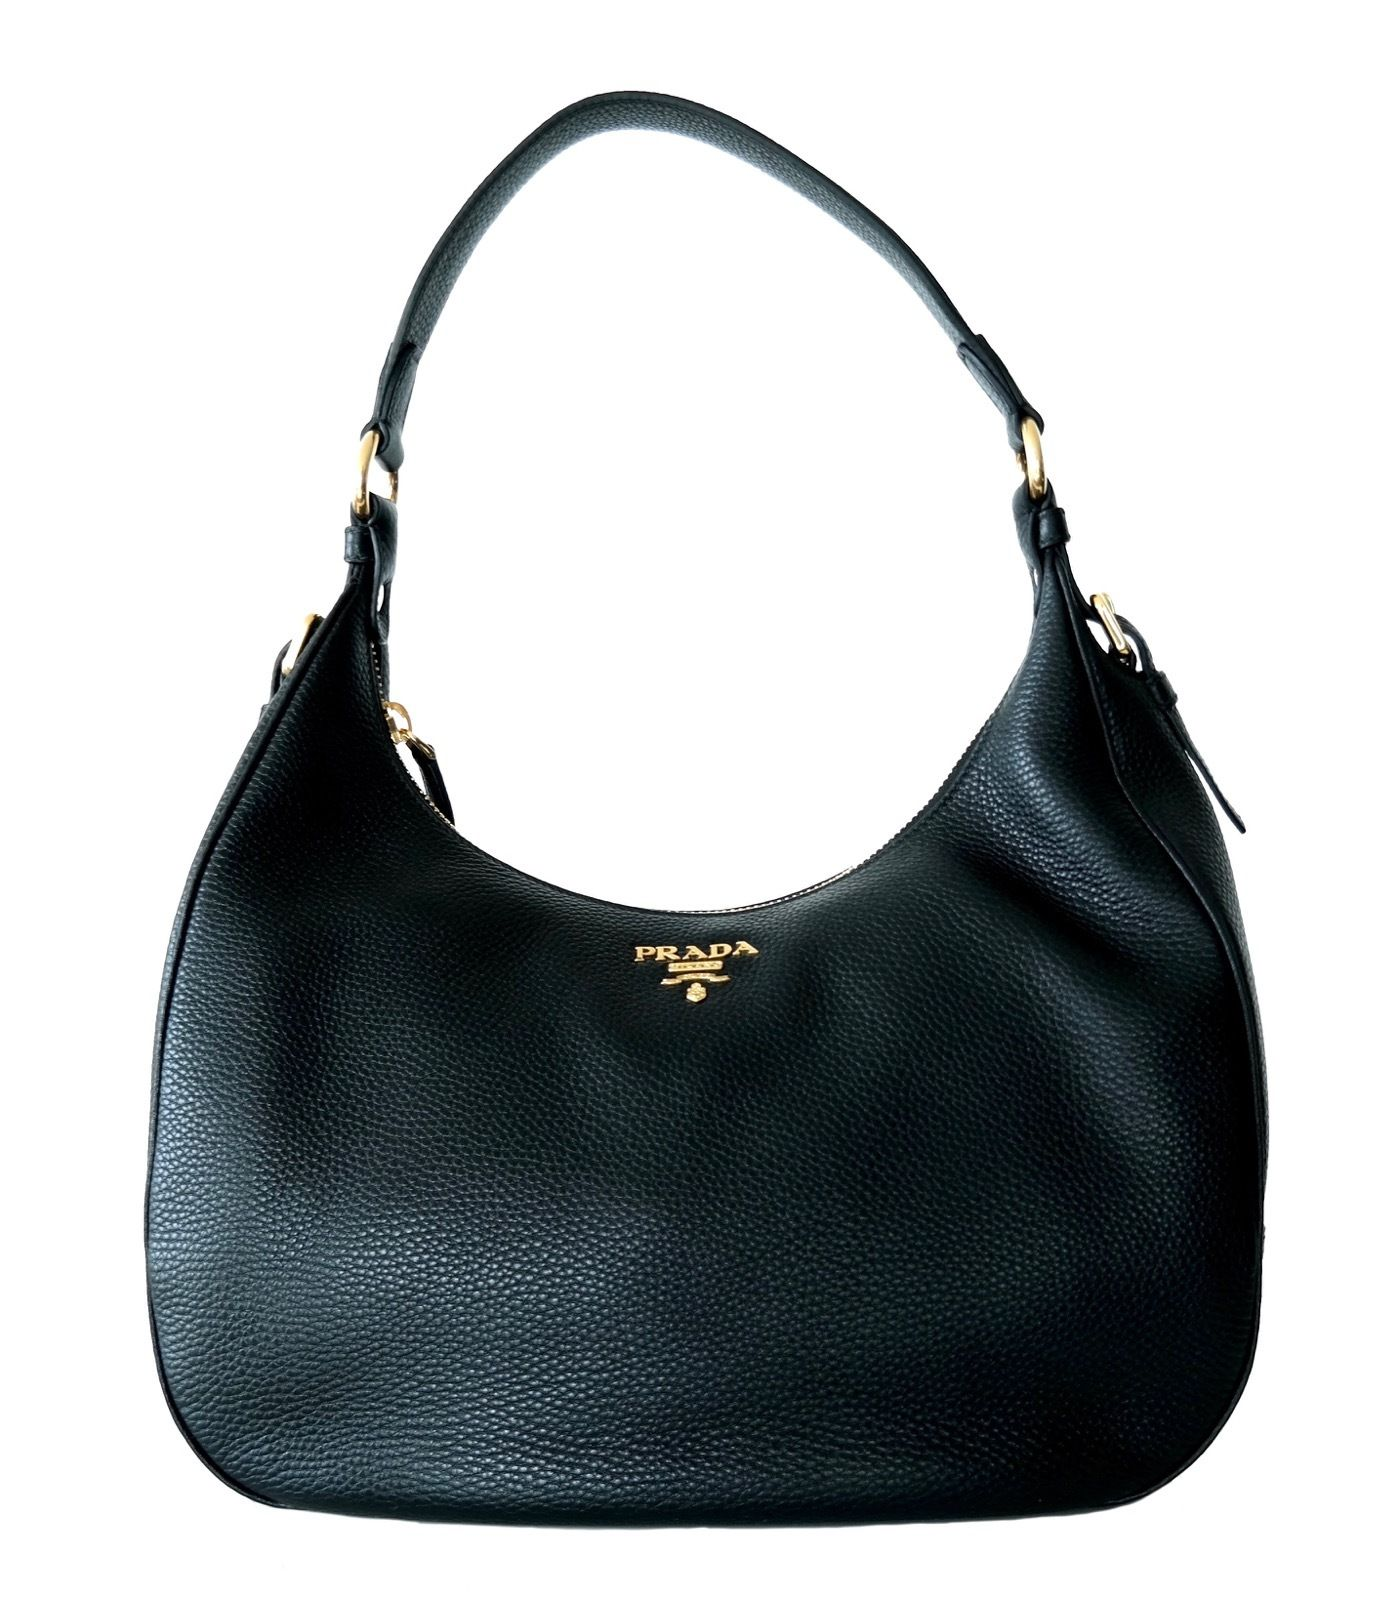 89722ec6a6d9 ... low cost prada daino large hobo bag 9c619 42984